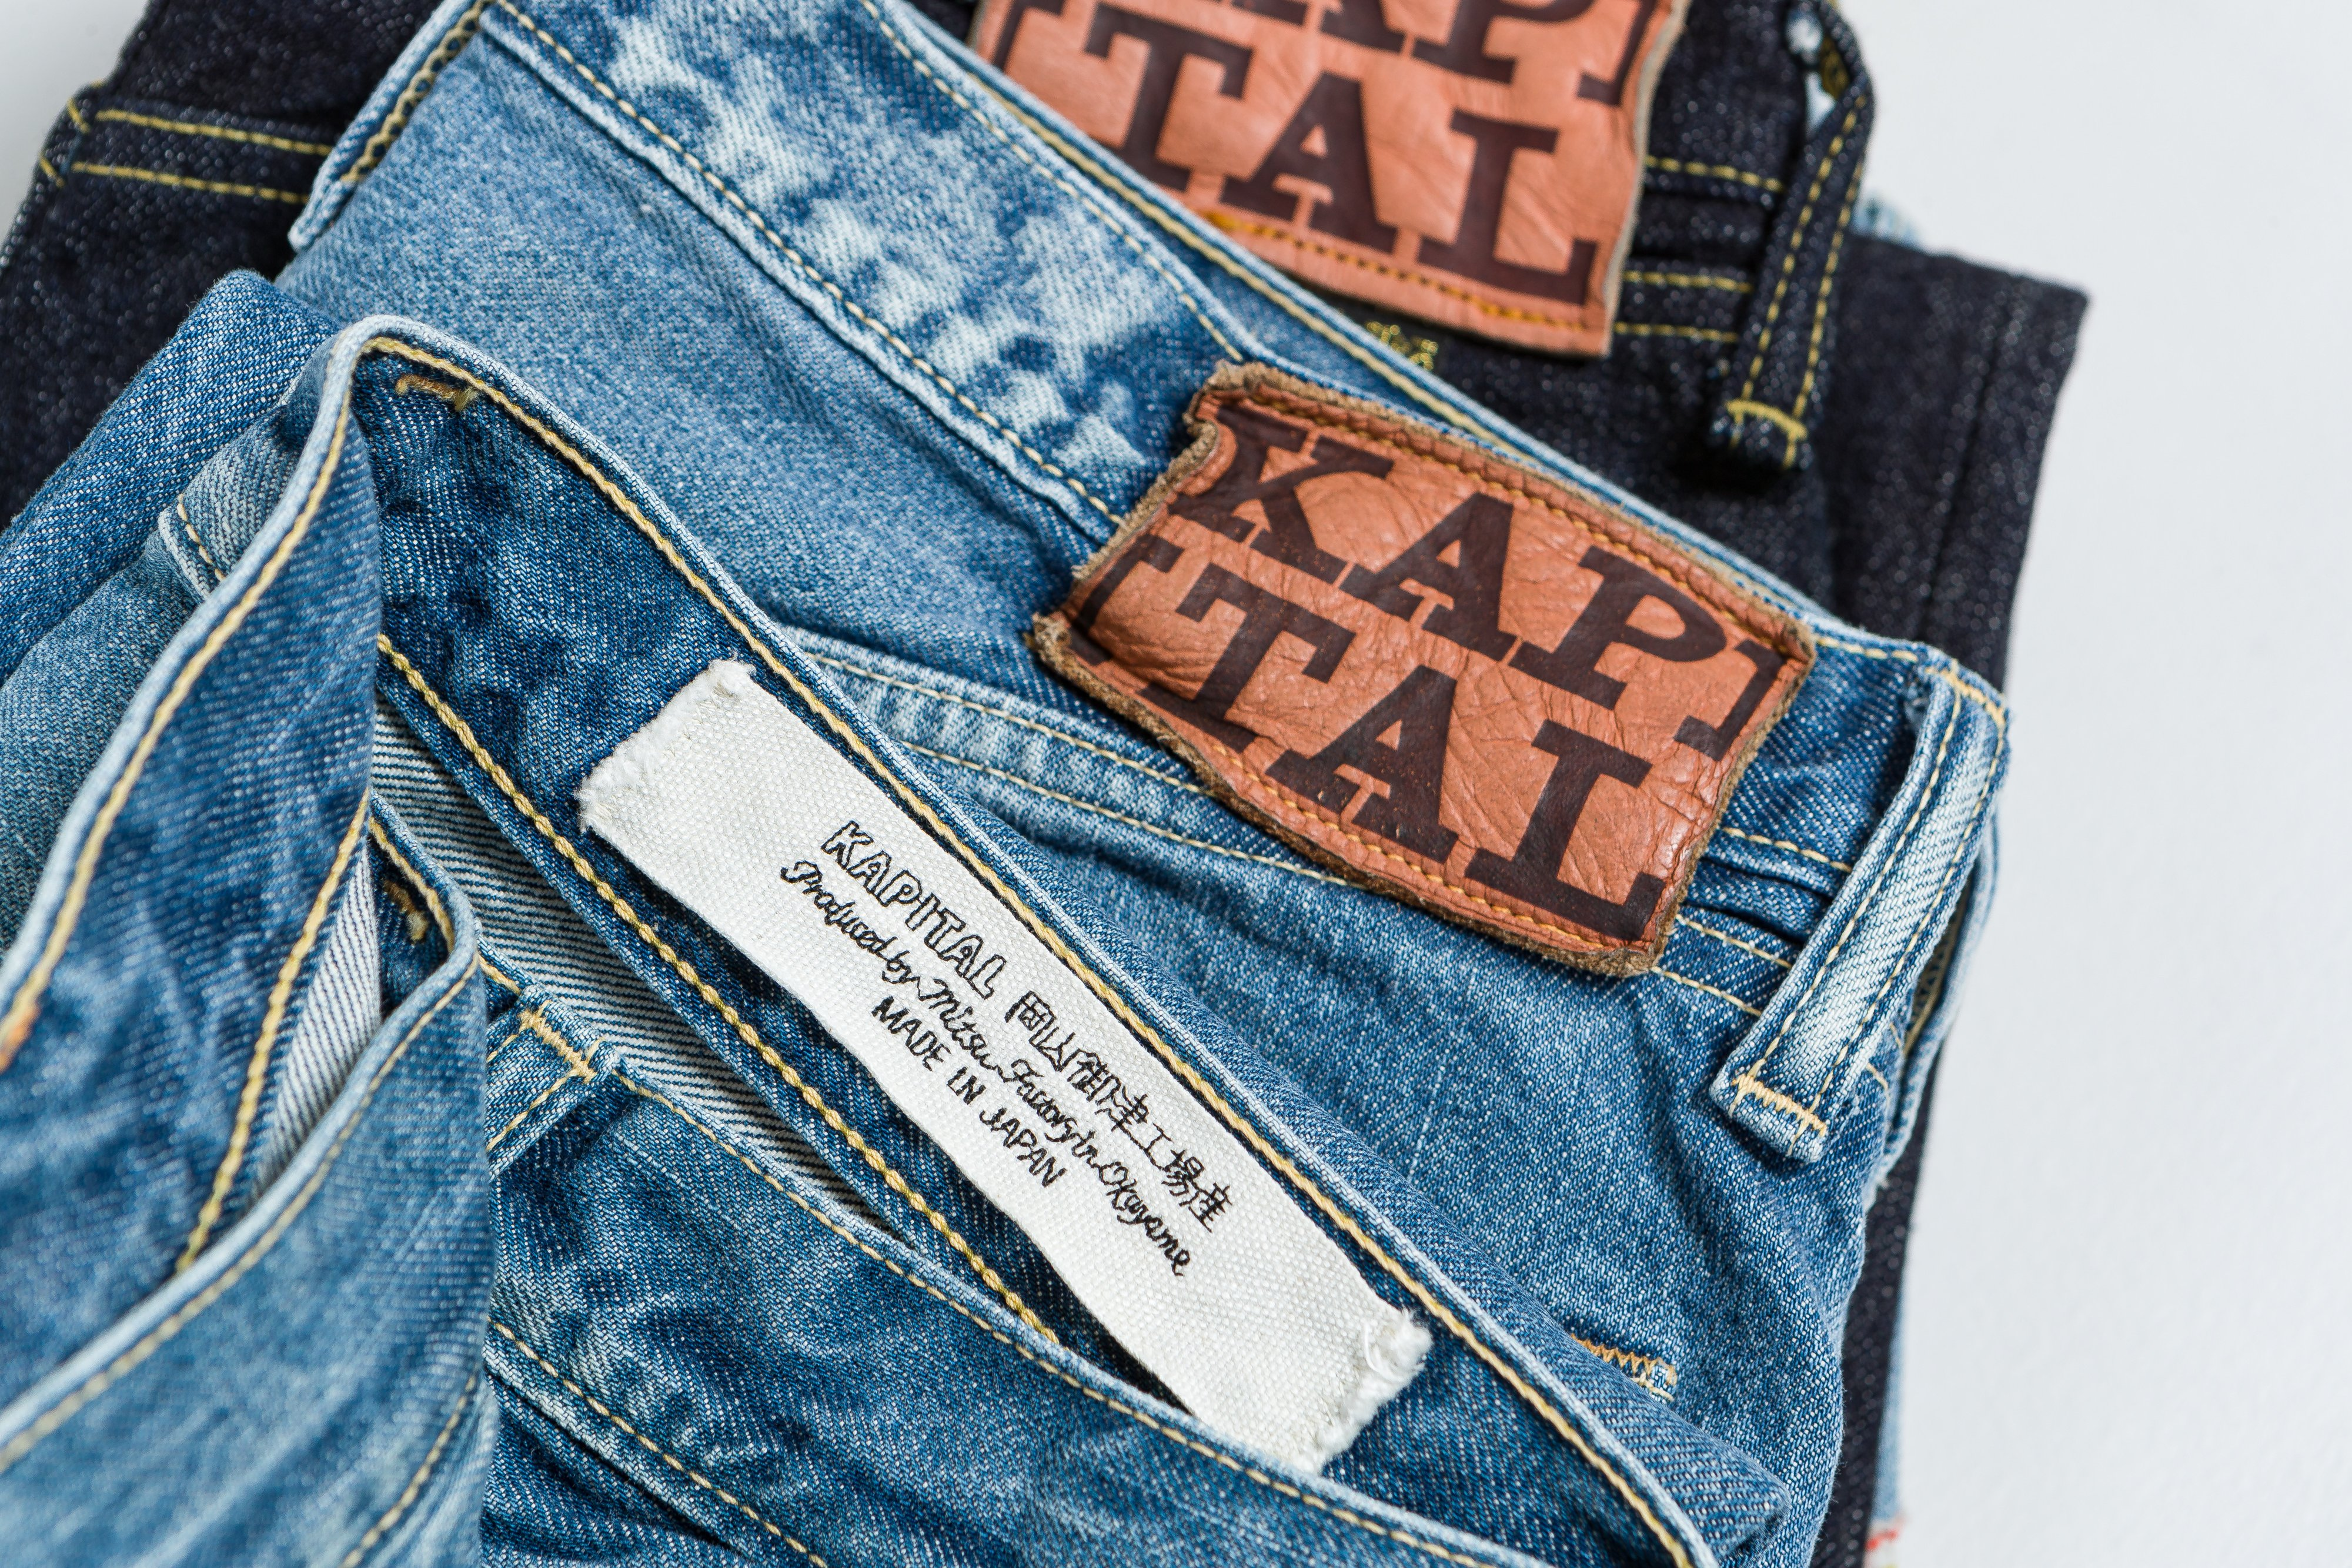 Up There Store - Kapital Kountry Spring/Summer '21